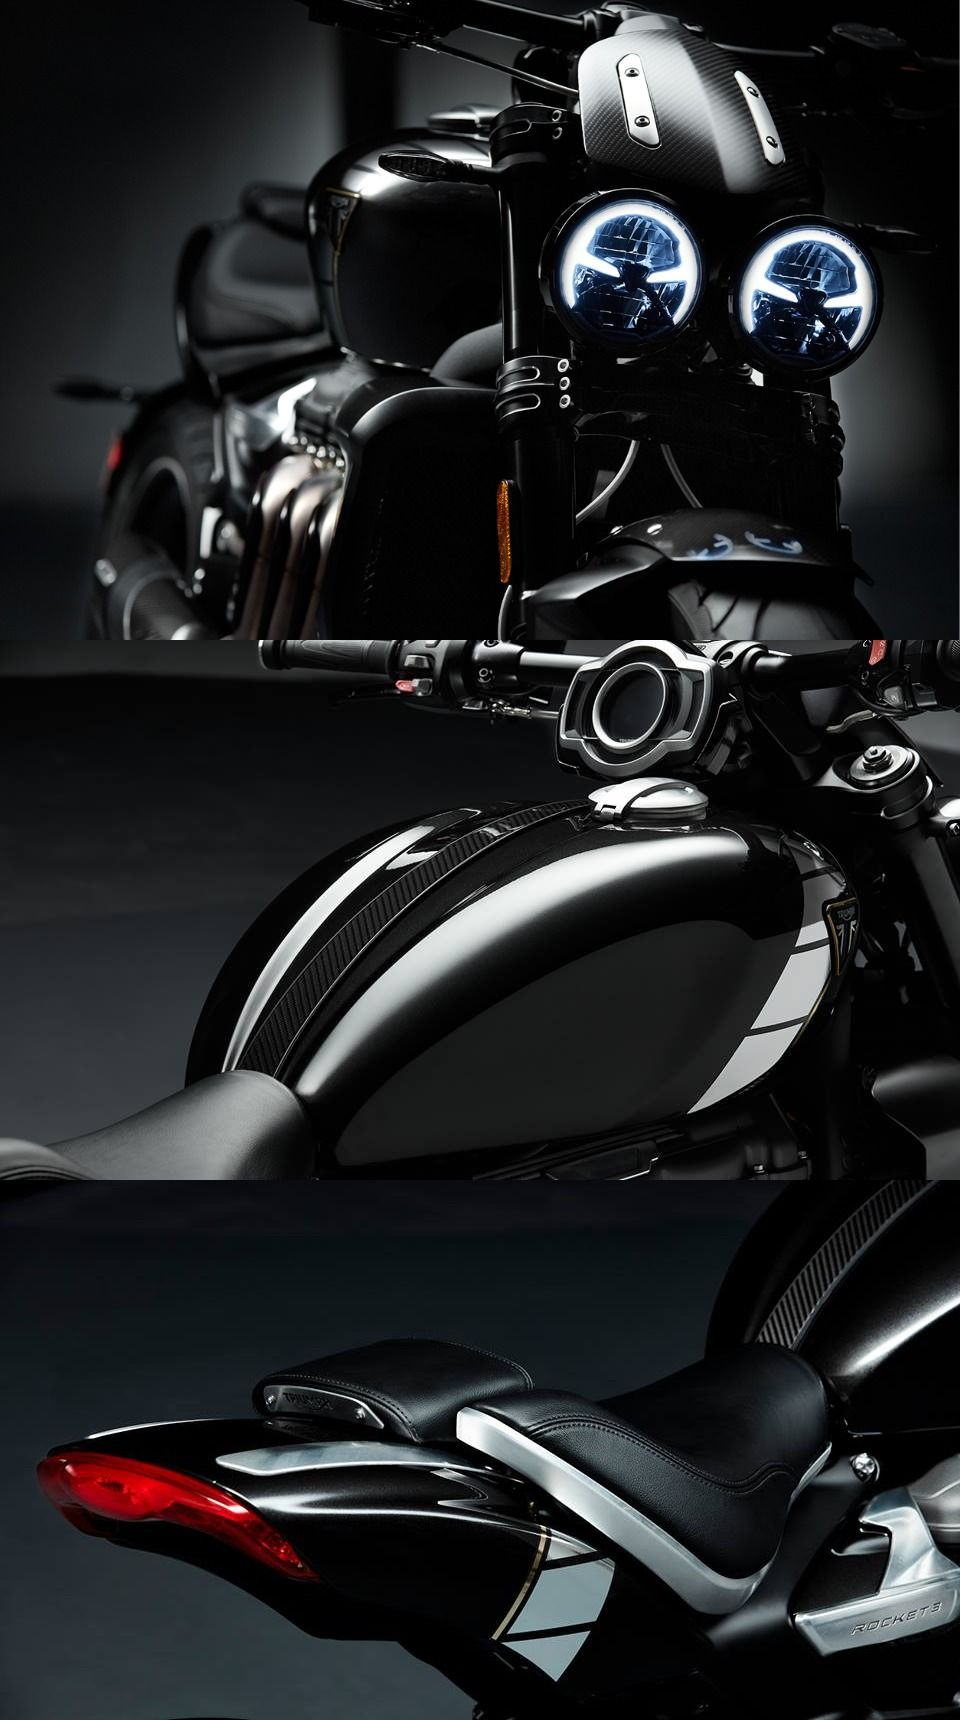 Triumph Factory Customs Thruxton R Tfc And Rocket Iii Tfc Debuted